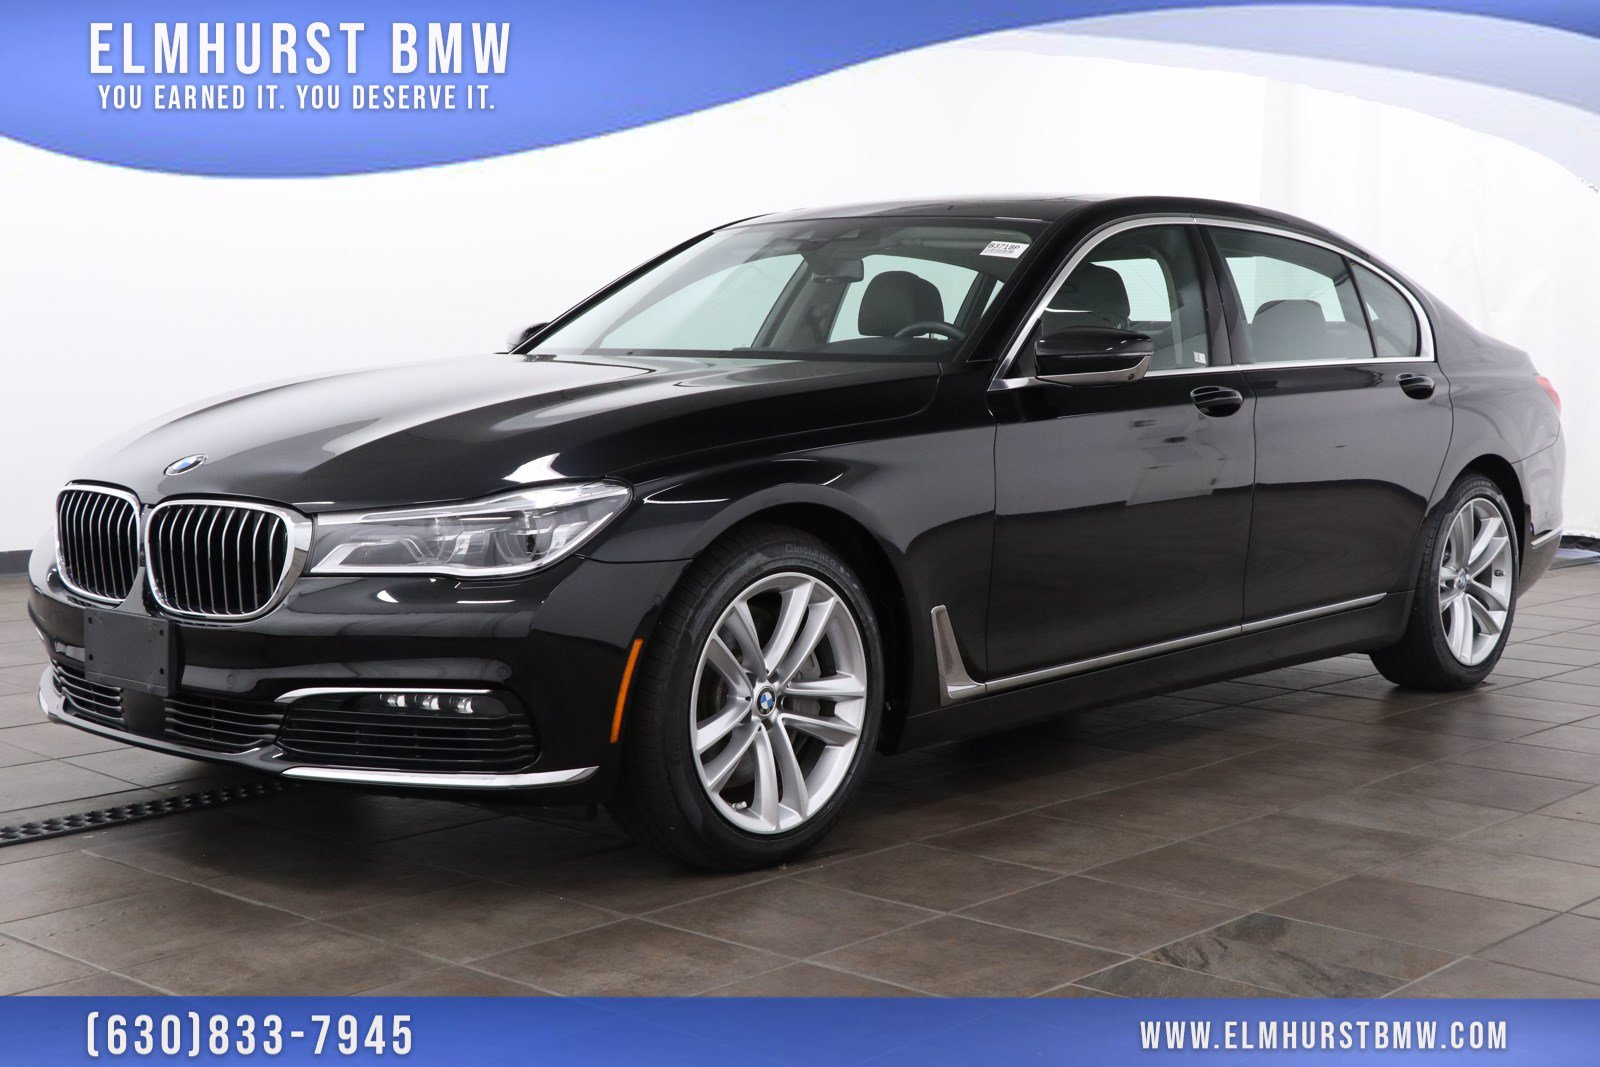 Certified Pre-Owned 2018 BMW 7 Series 750i xDrive